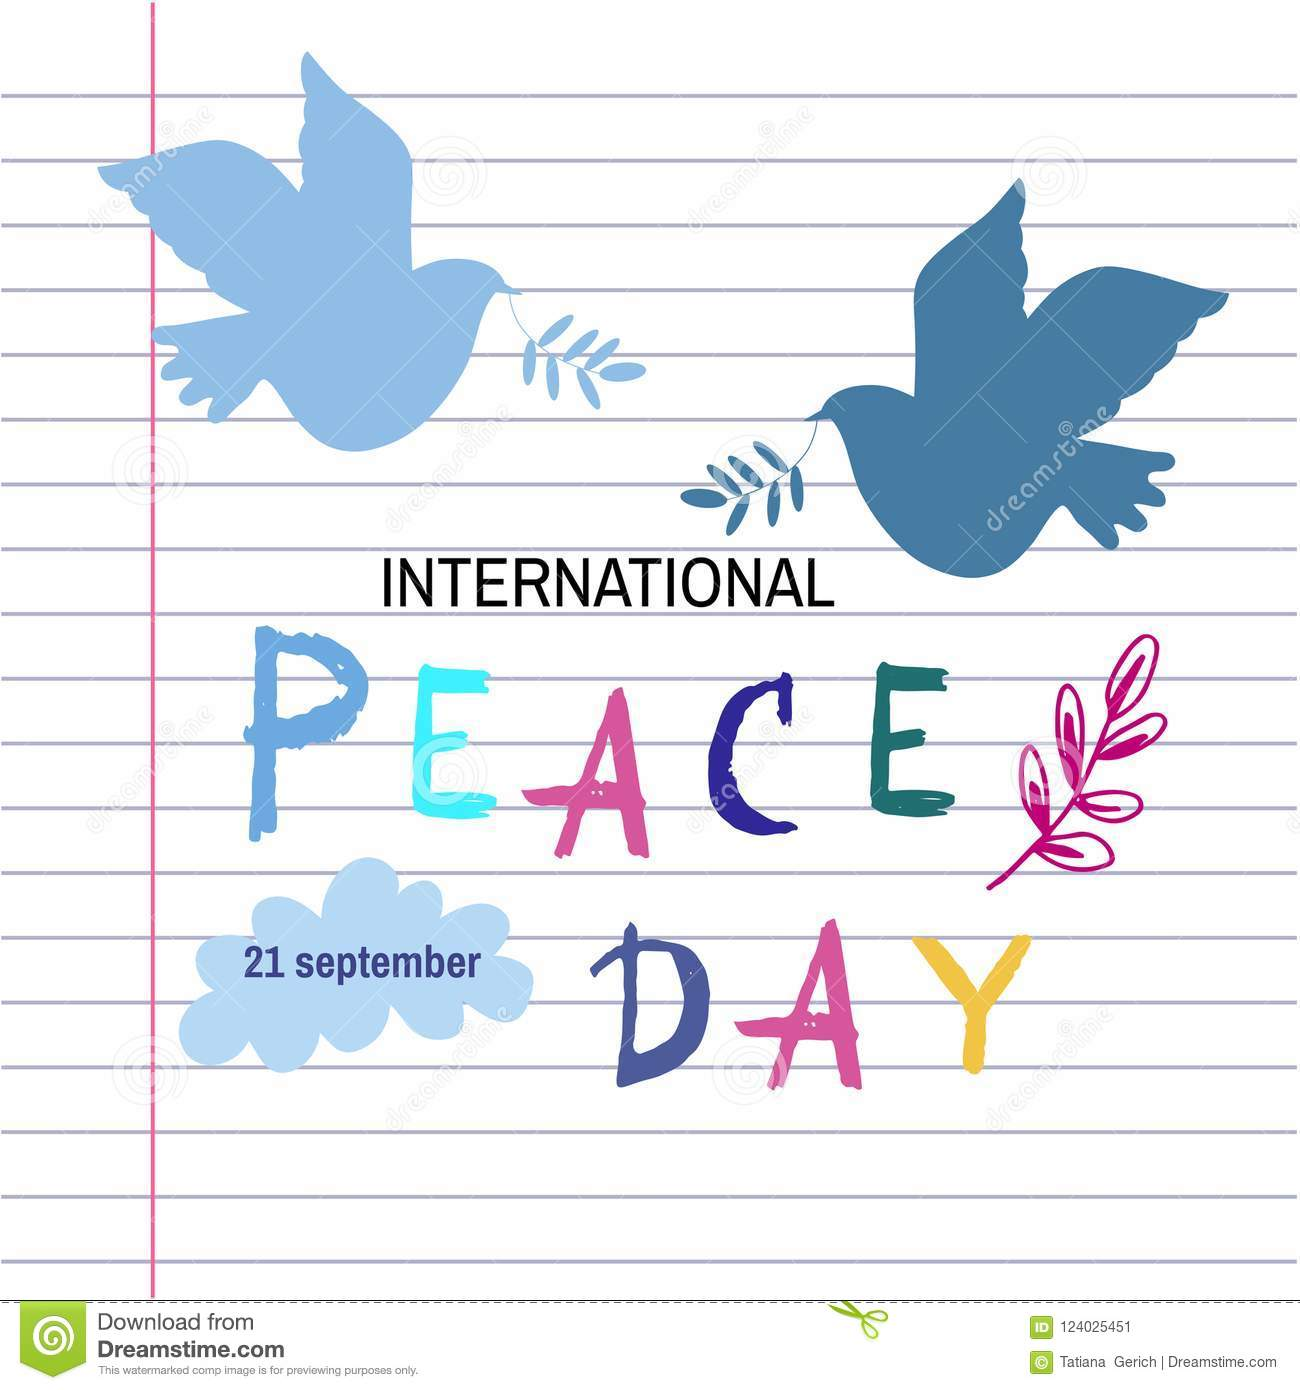 Peace day template poster stock vector. Illustration of leaf - 124025451